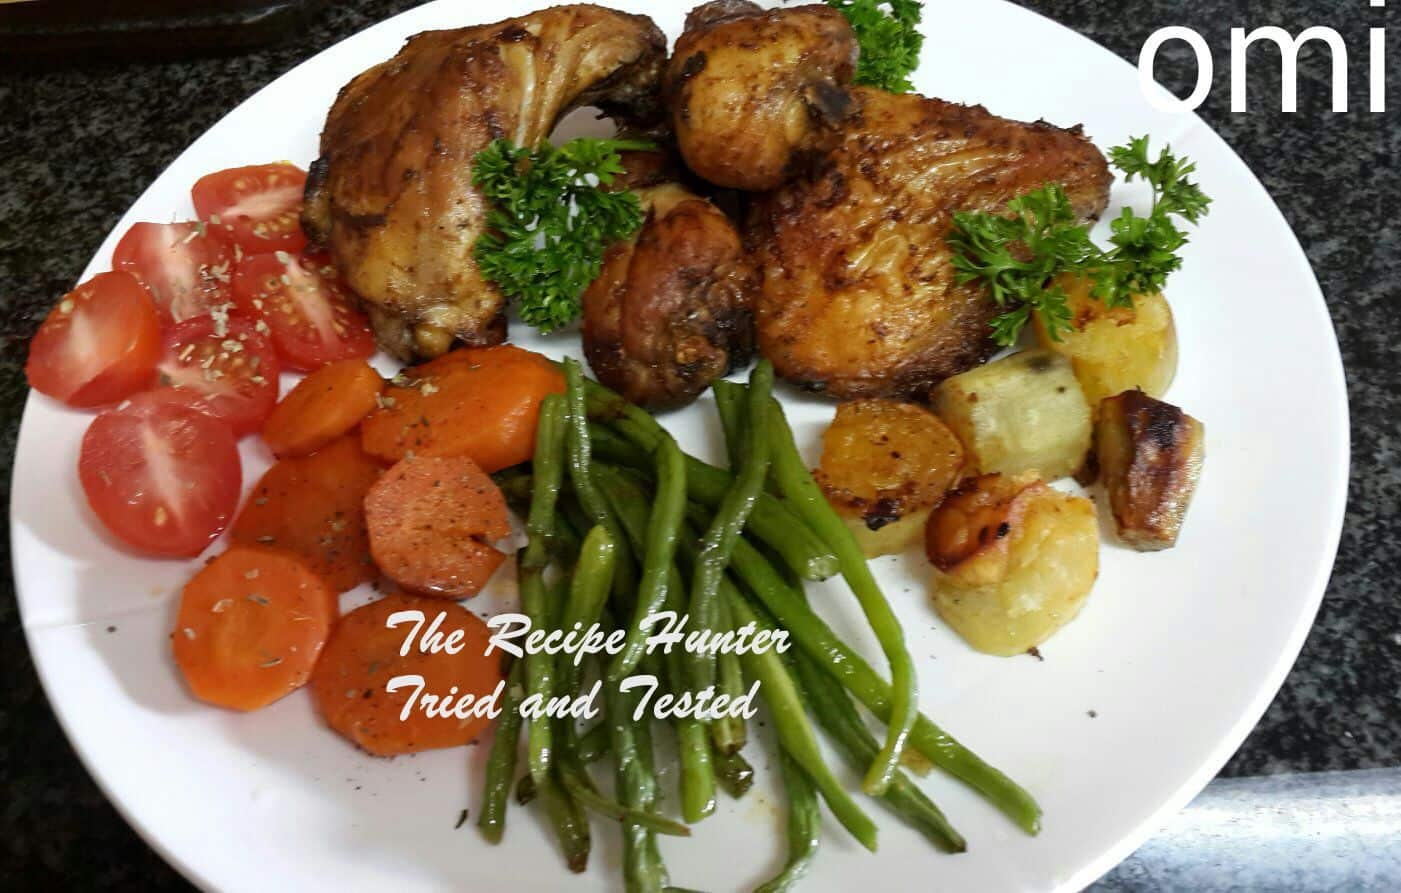 Omi's Roast chicken with roasted sweet potatoes, green beans and carrots